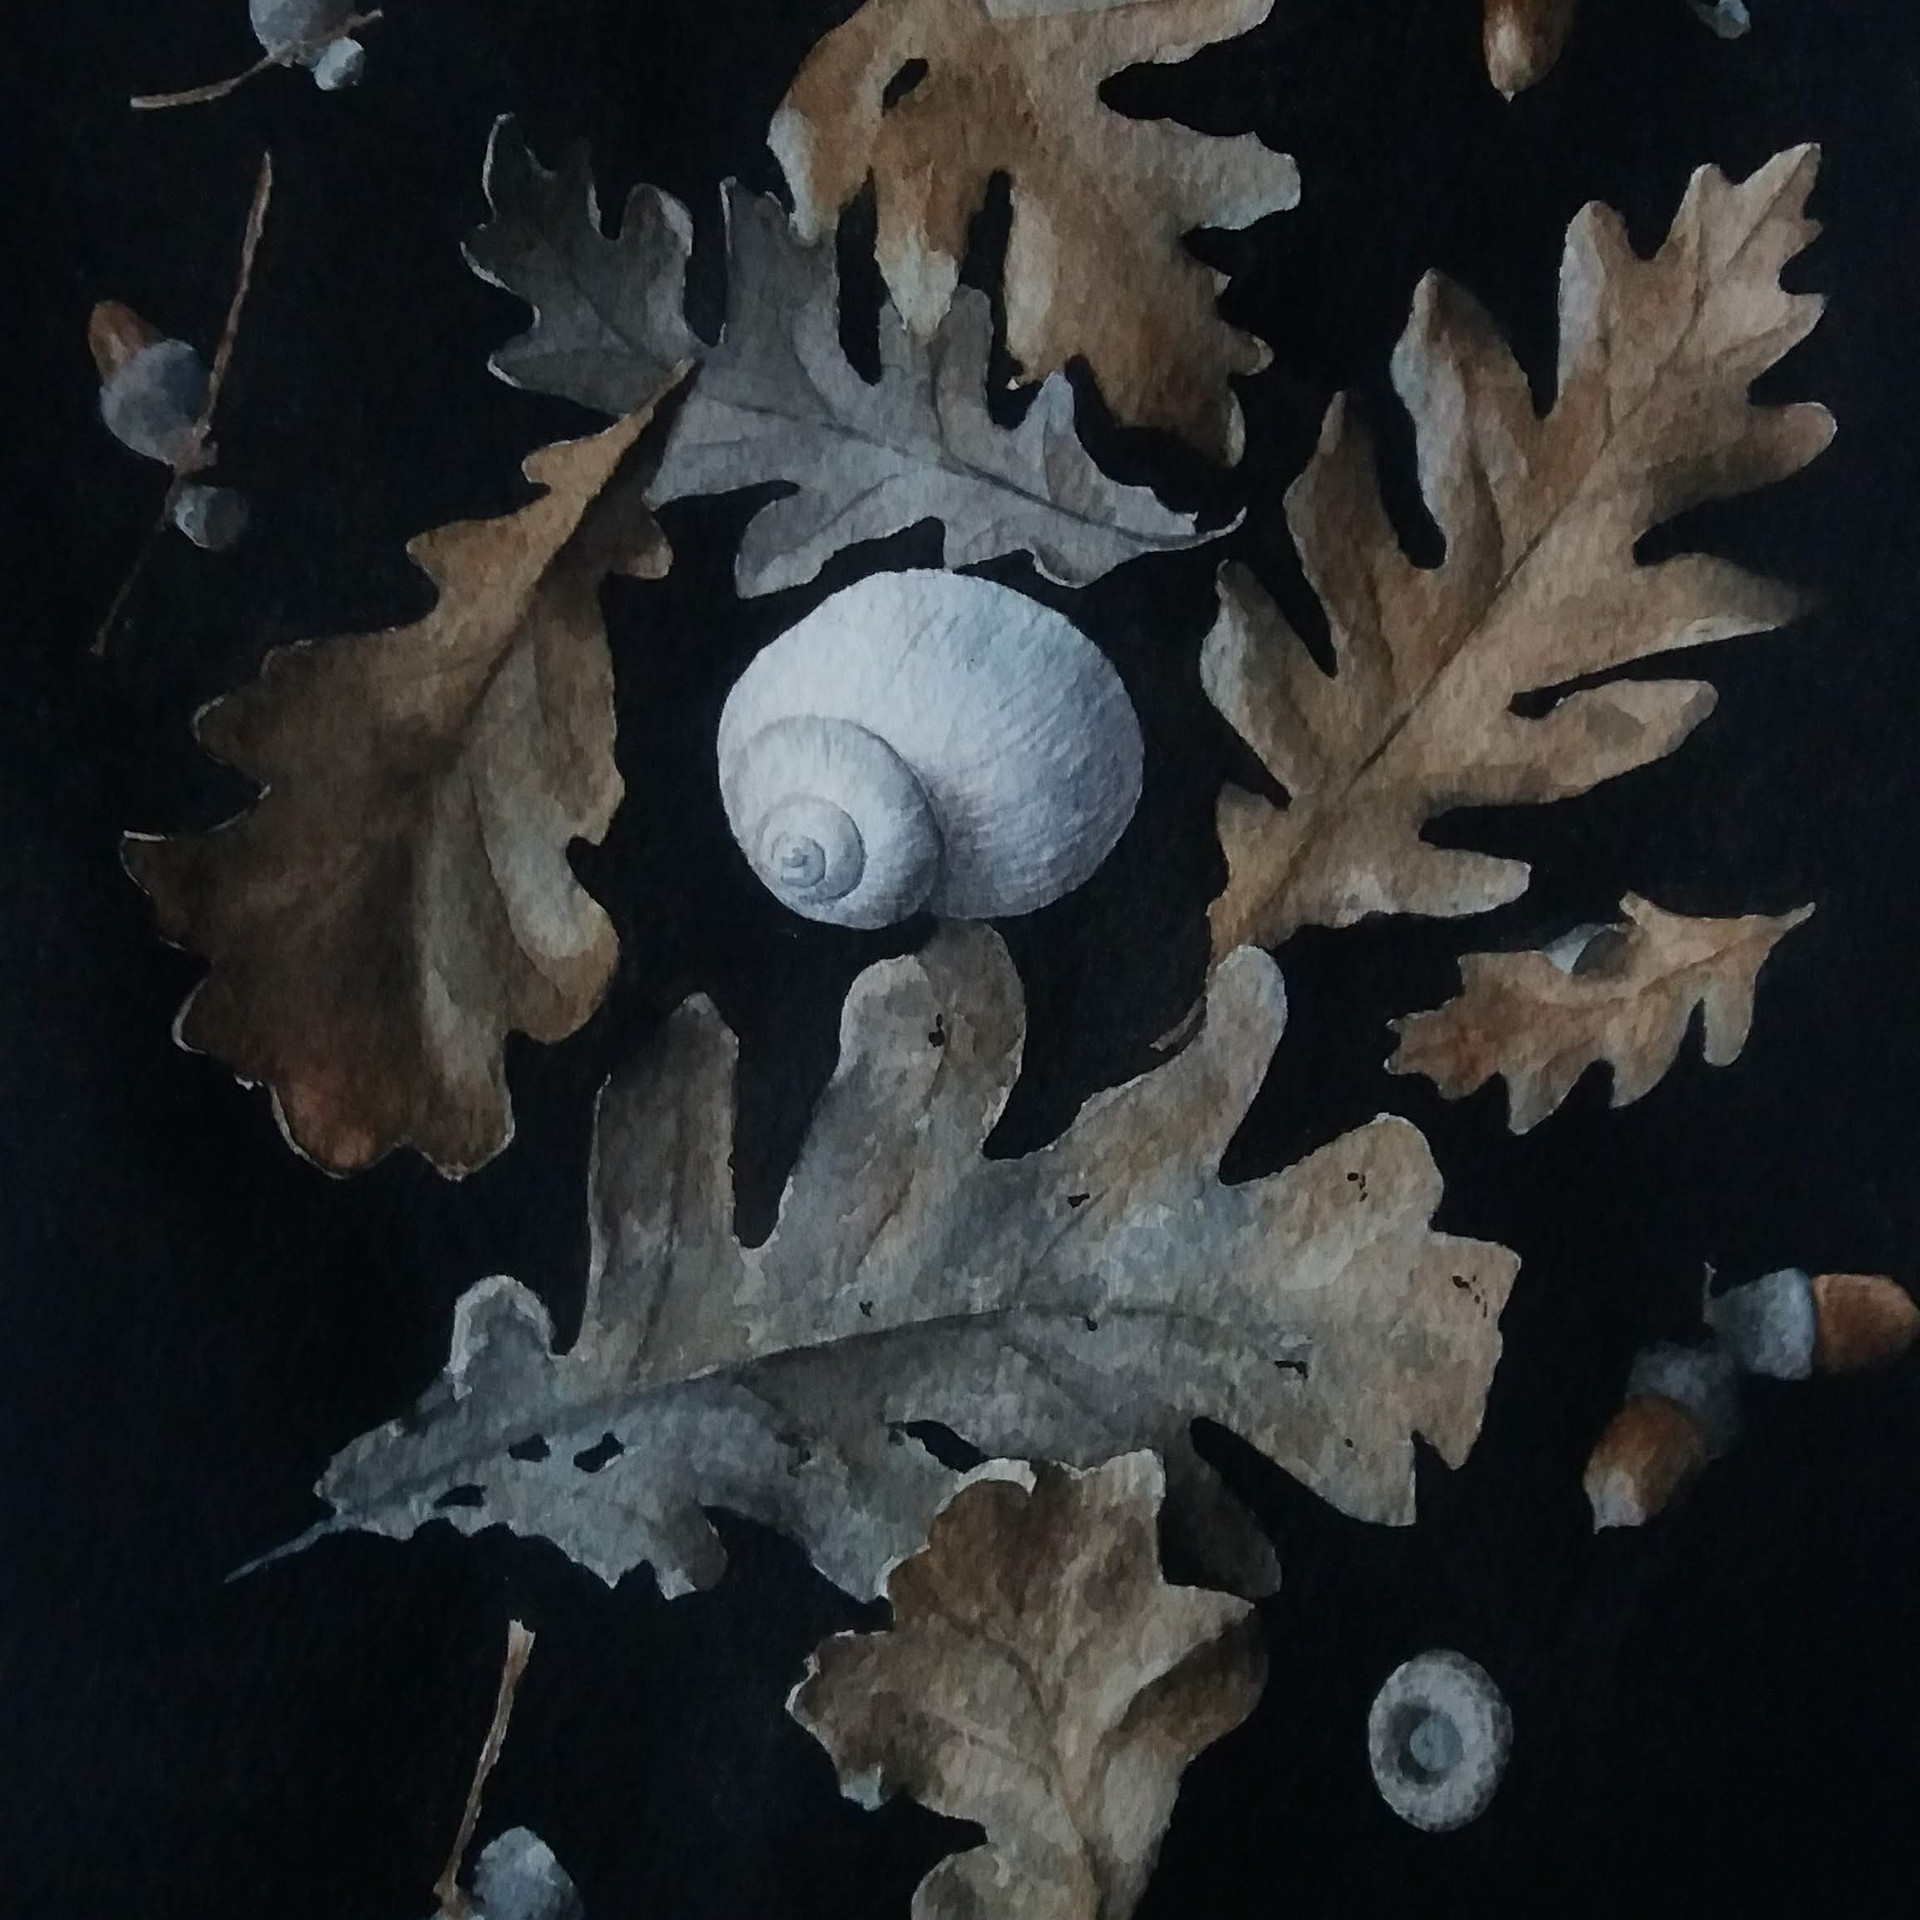 Still life with oak leafs, acorns and a shell